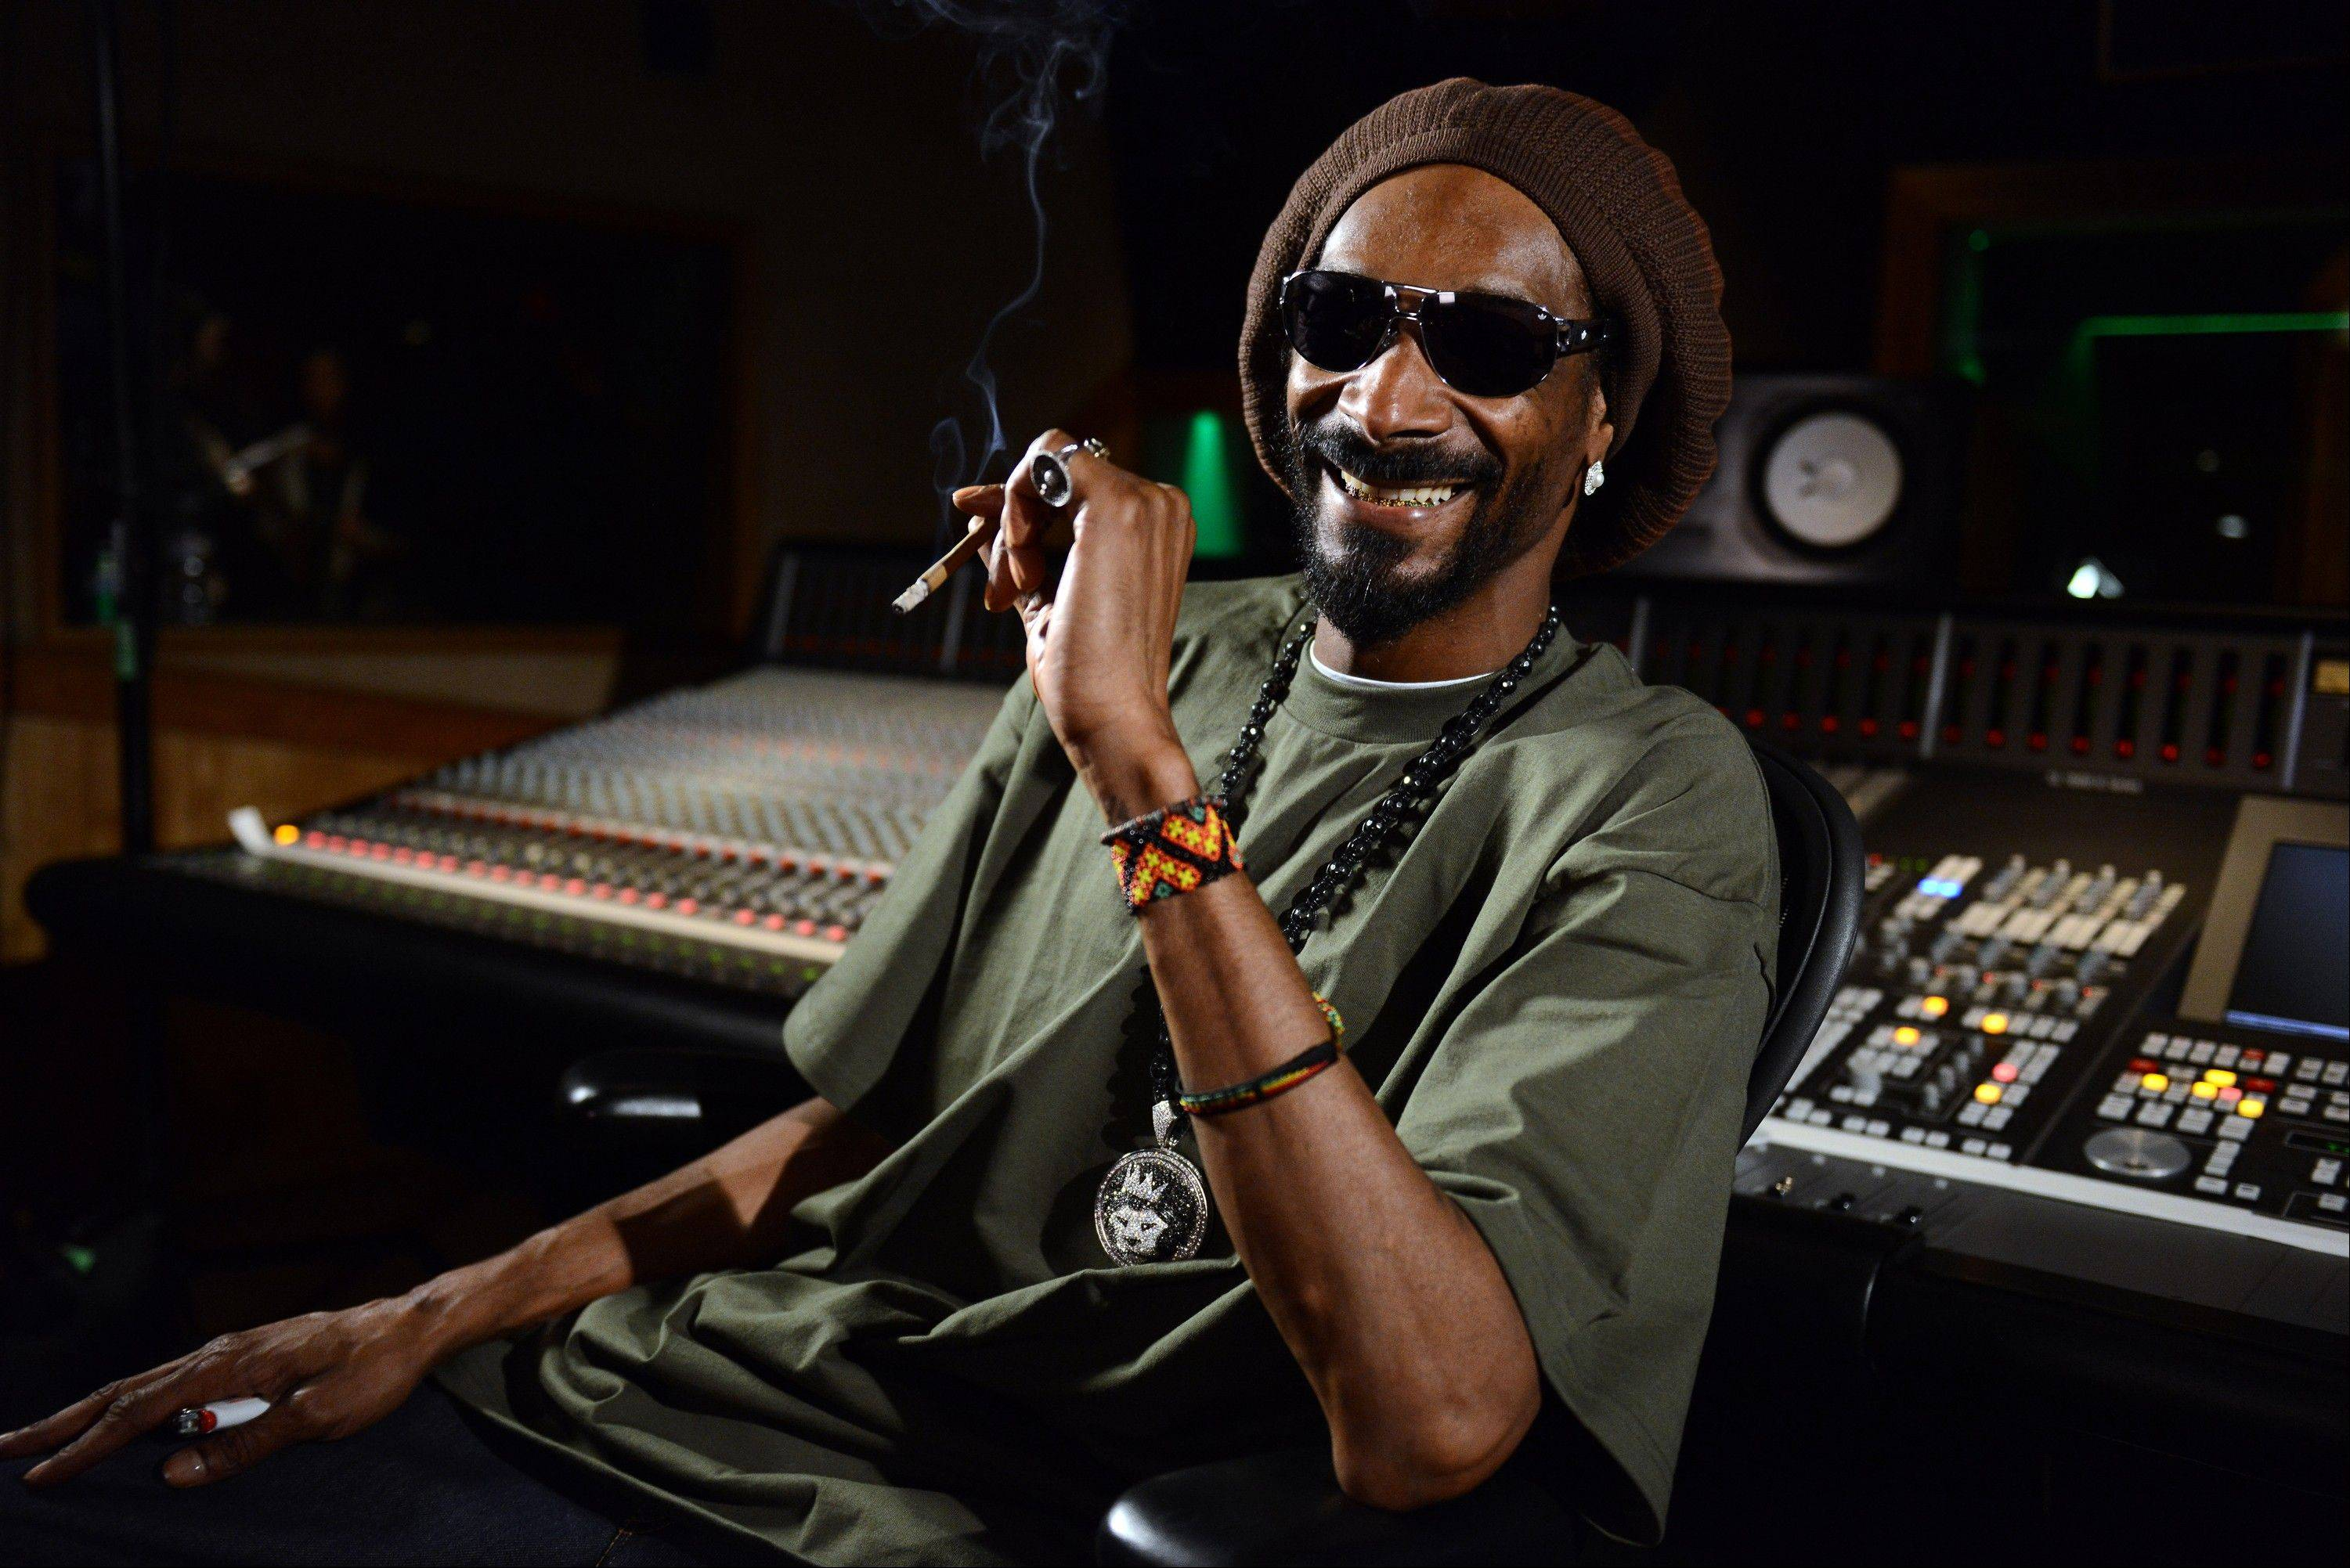 How committed is Snoop Dogg to his new moniker Snoop Lion? He is using the name to release a reggae- and dancehall-focused album releasing on April 23.